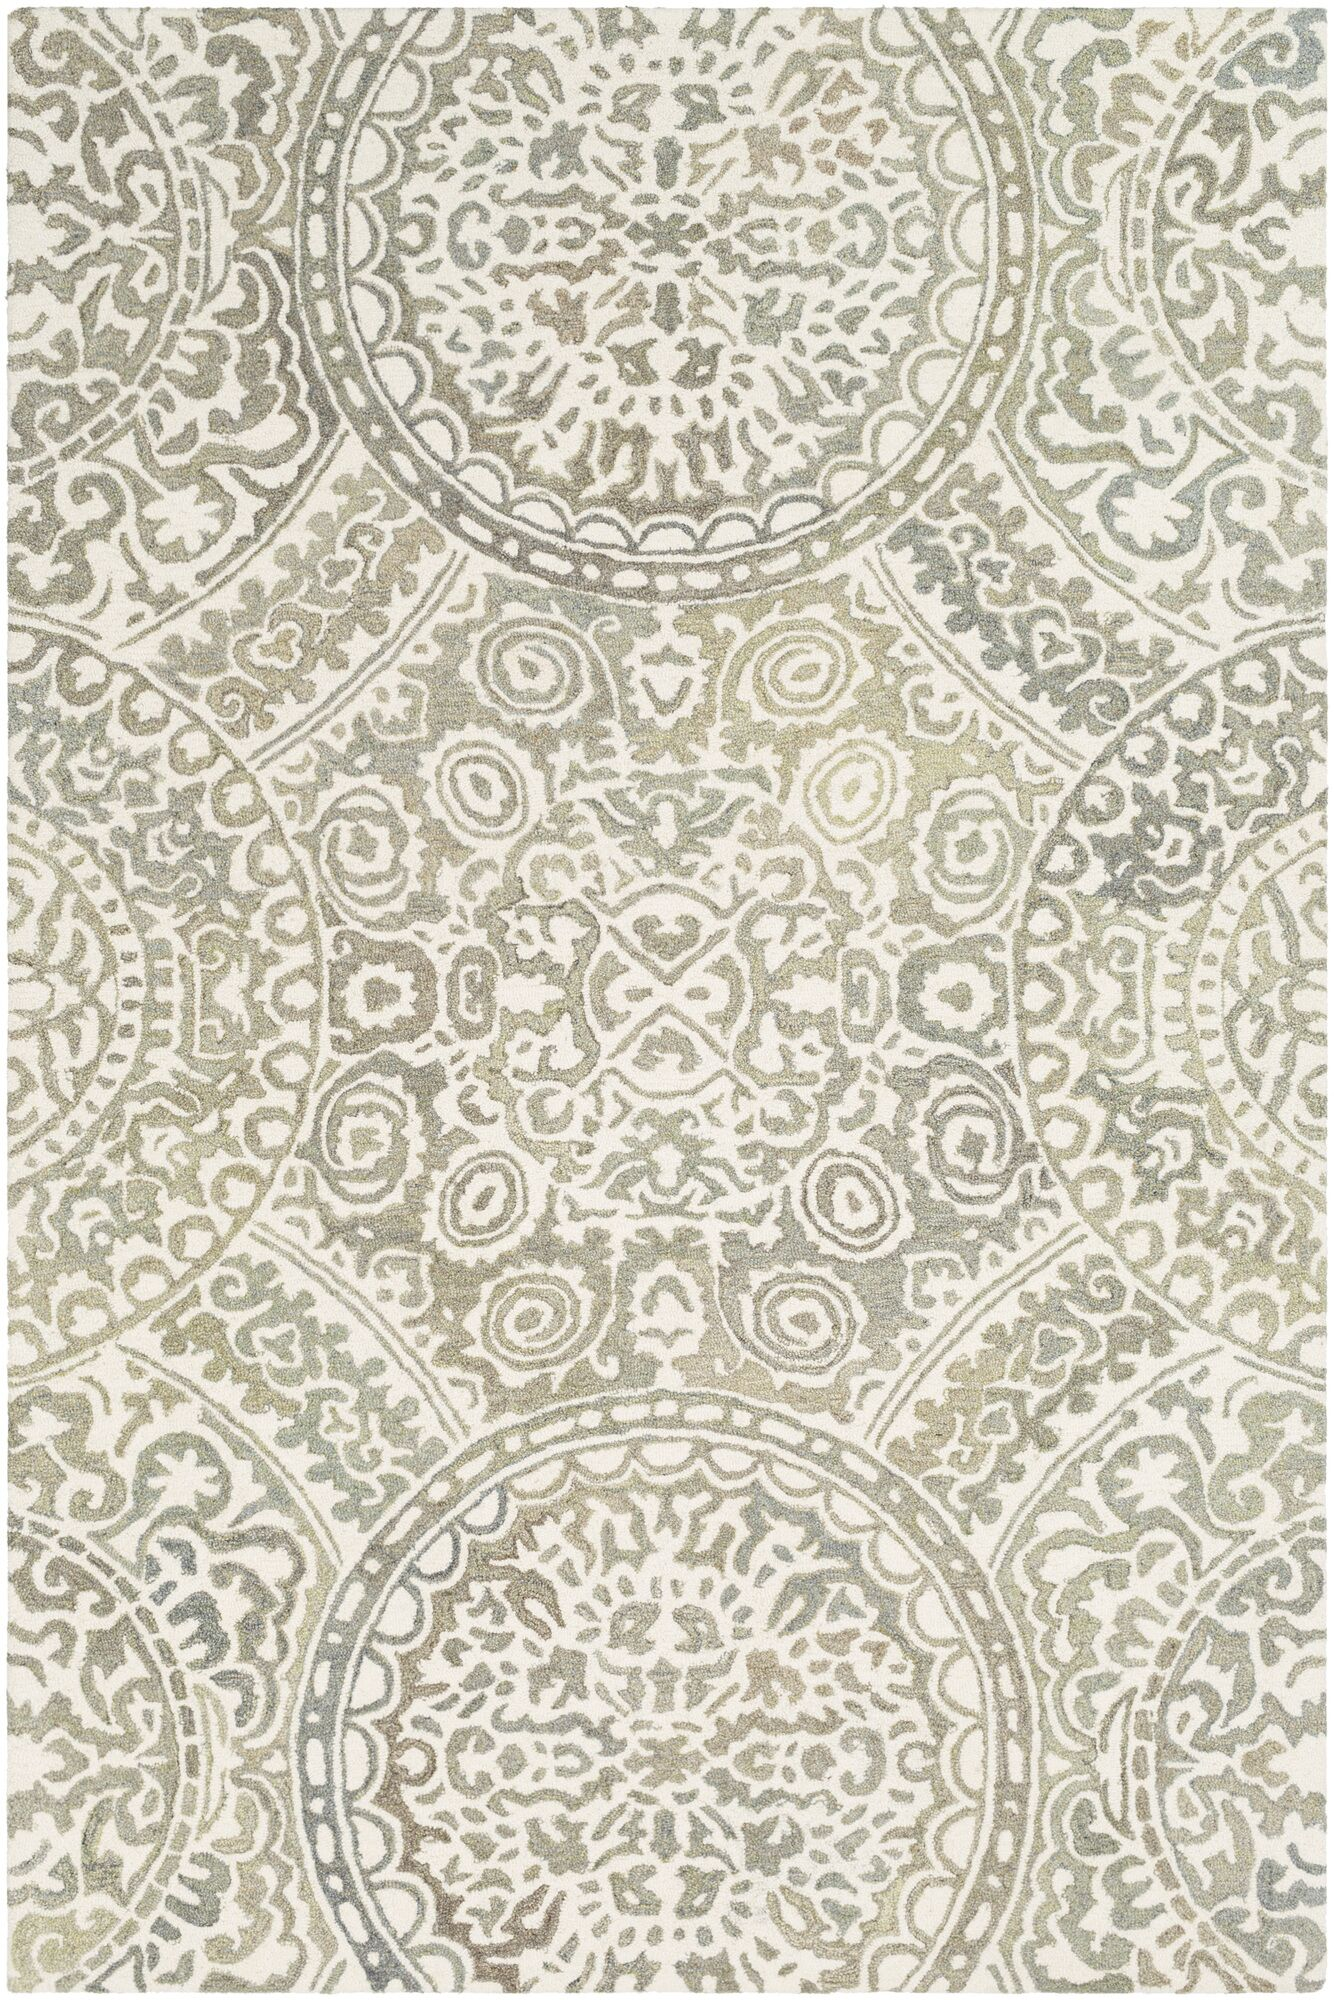 Eady Hand Hooked Wool Taupe/Cream Area Rug Rug Size: Rectangle 8' x 10'